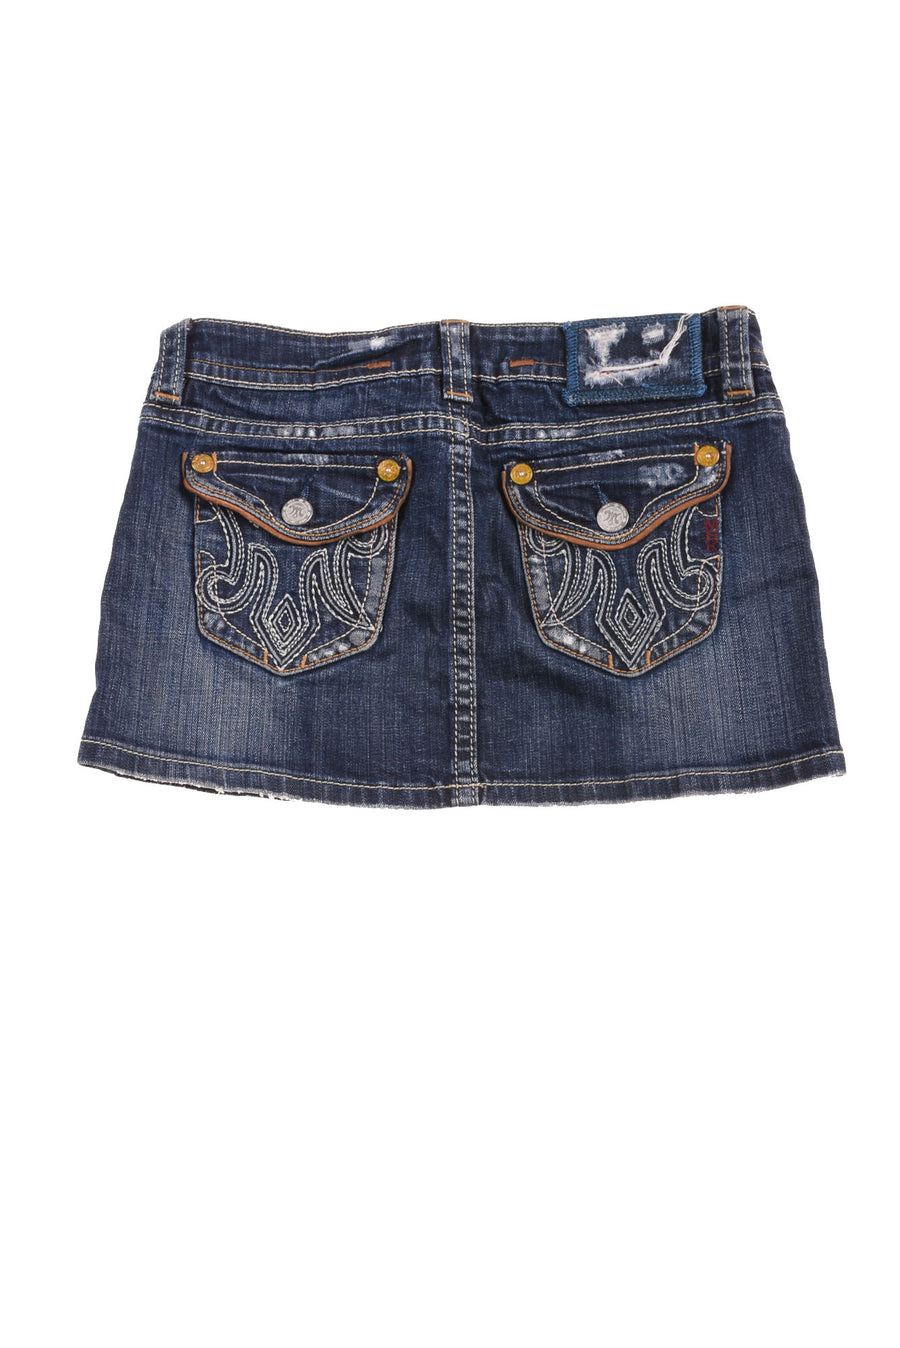 USED Mek Denim Women's Skirt 27 Blue